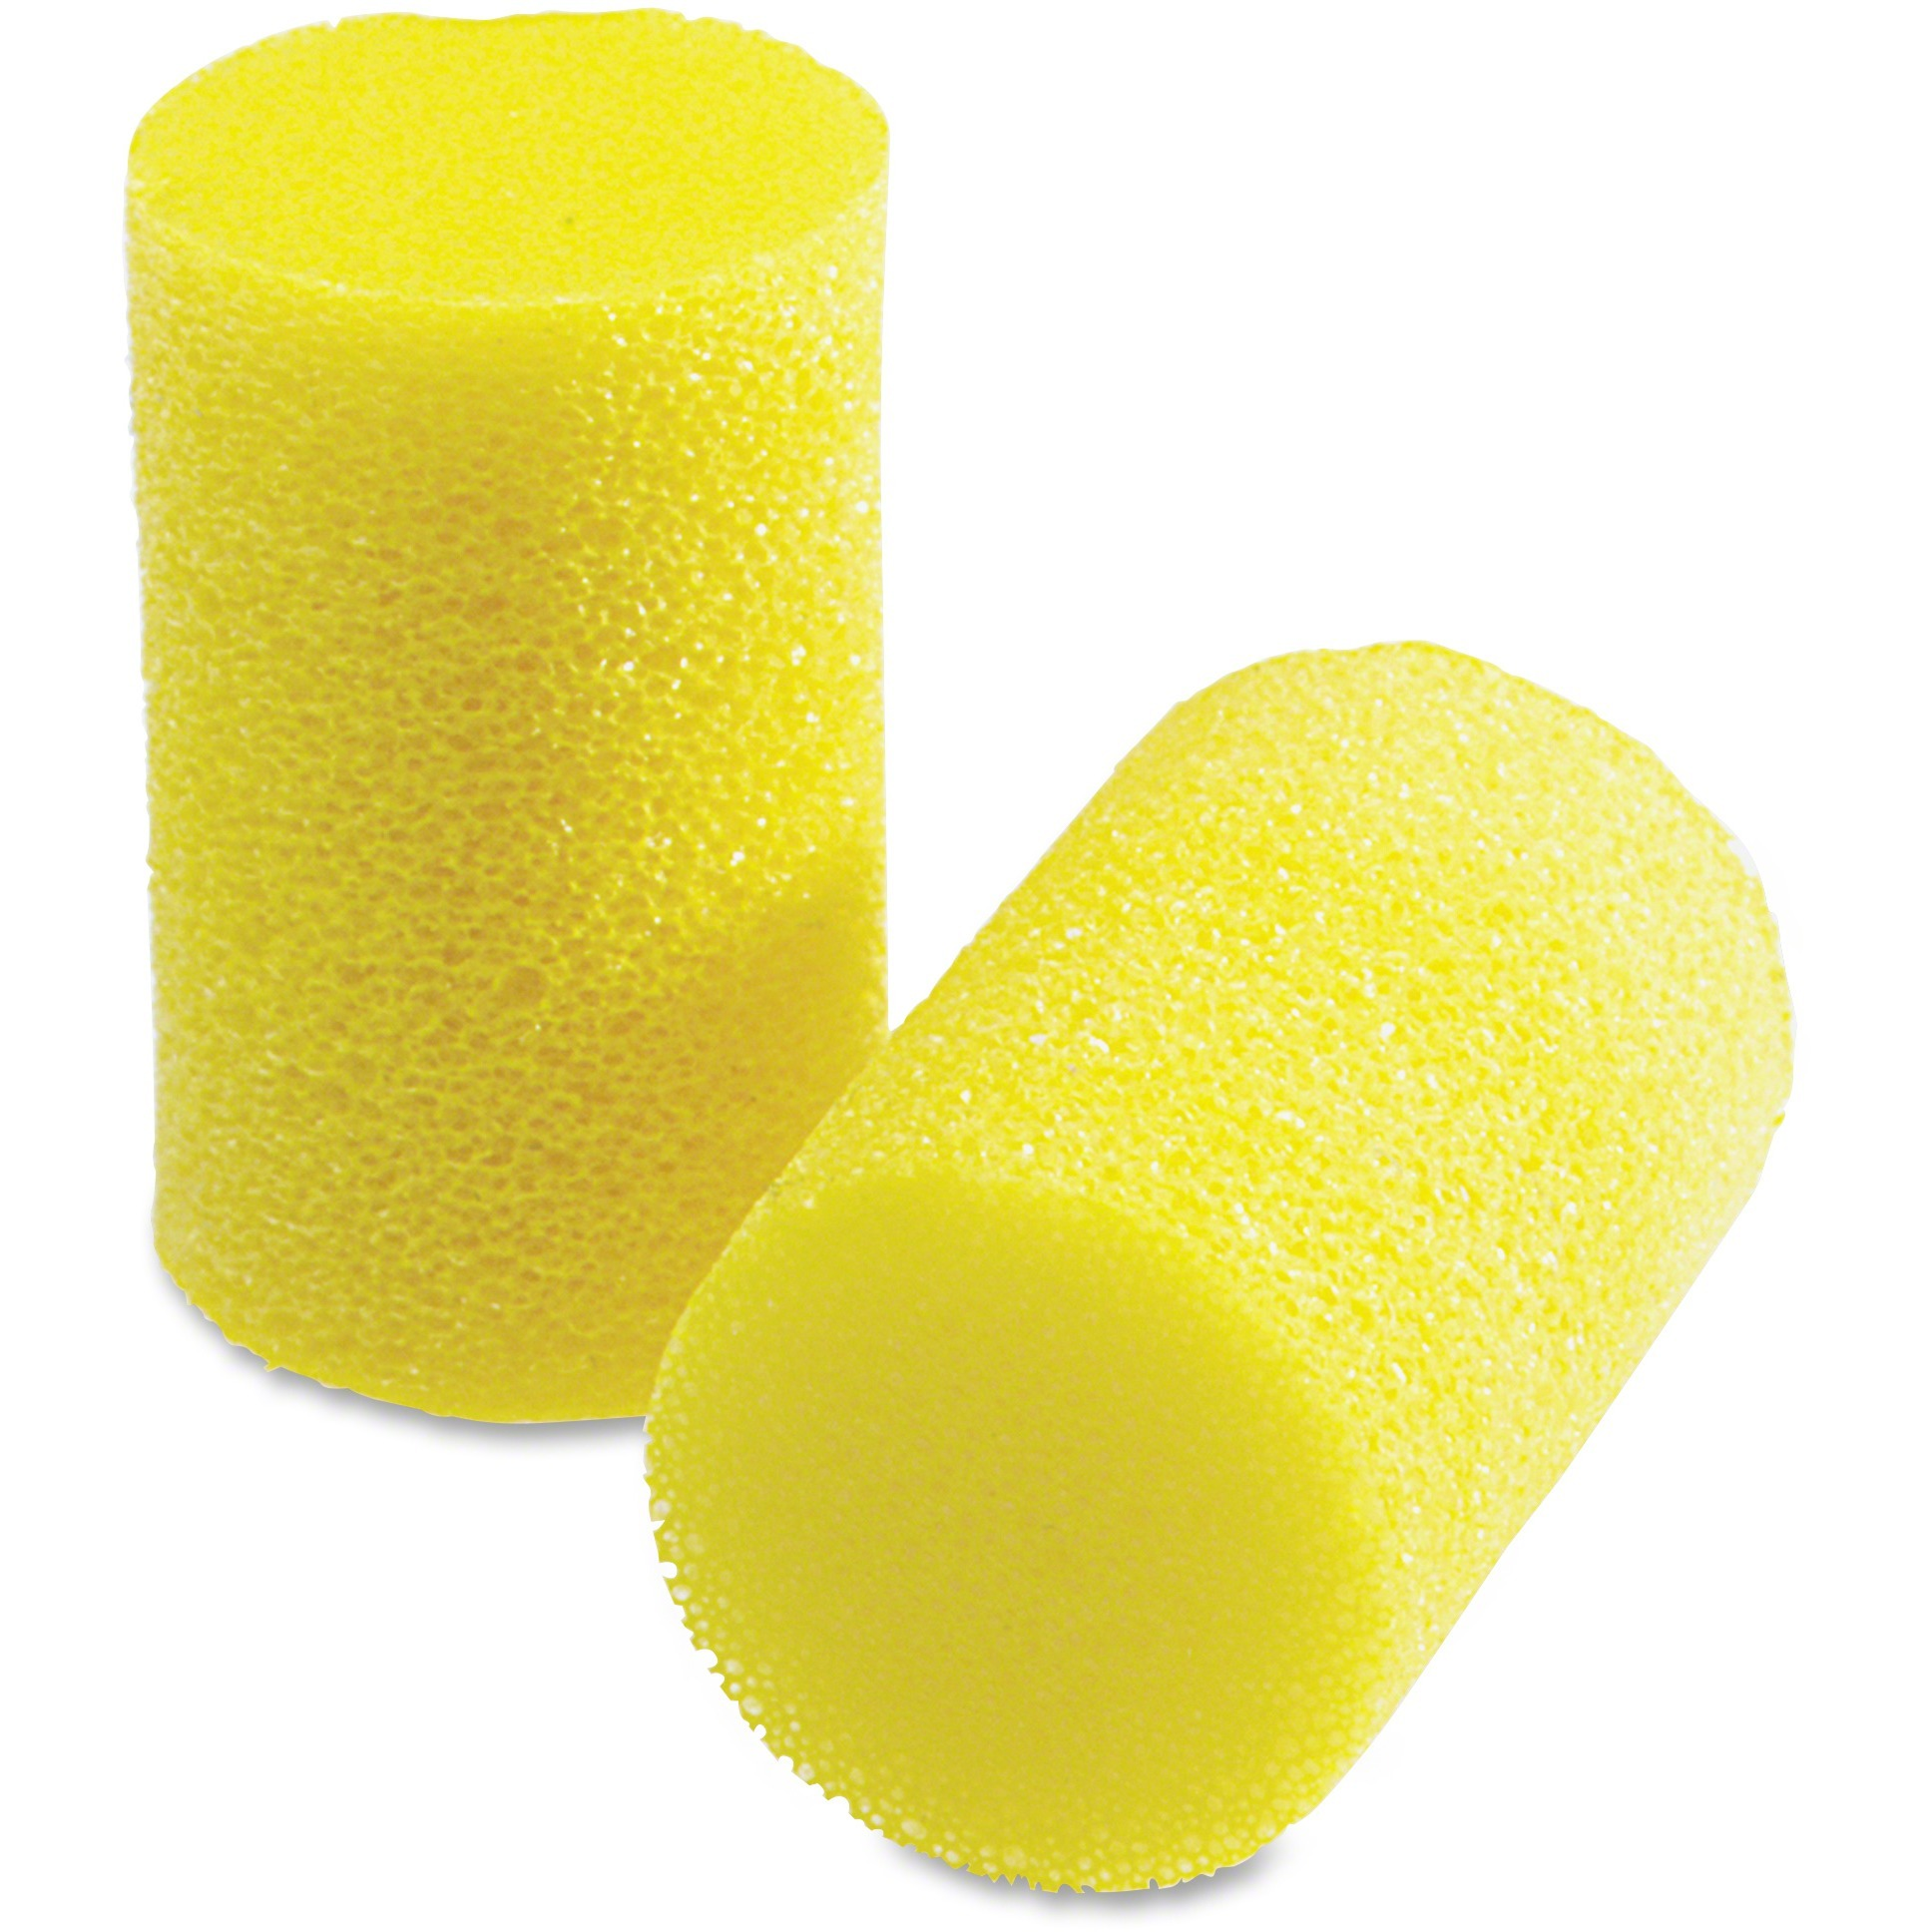 E-A-R, MMM3101103, Classic Uncorded Earplugs, 200 / Box, Yellow